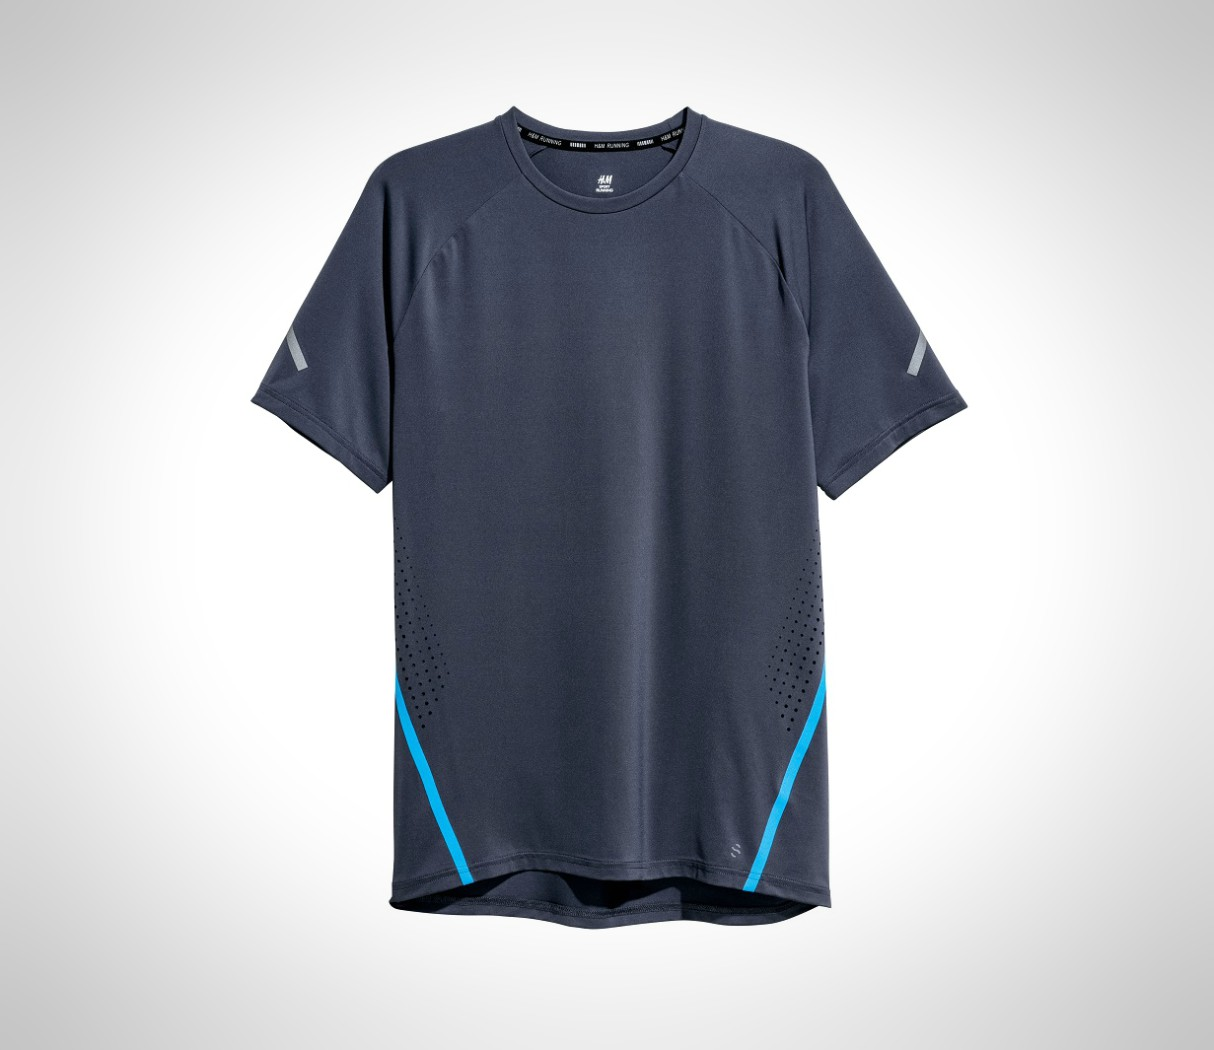 gym-clothes-for-men-workout-gear-tshirt-hm